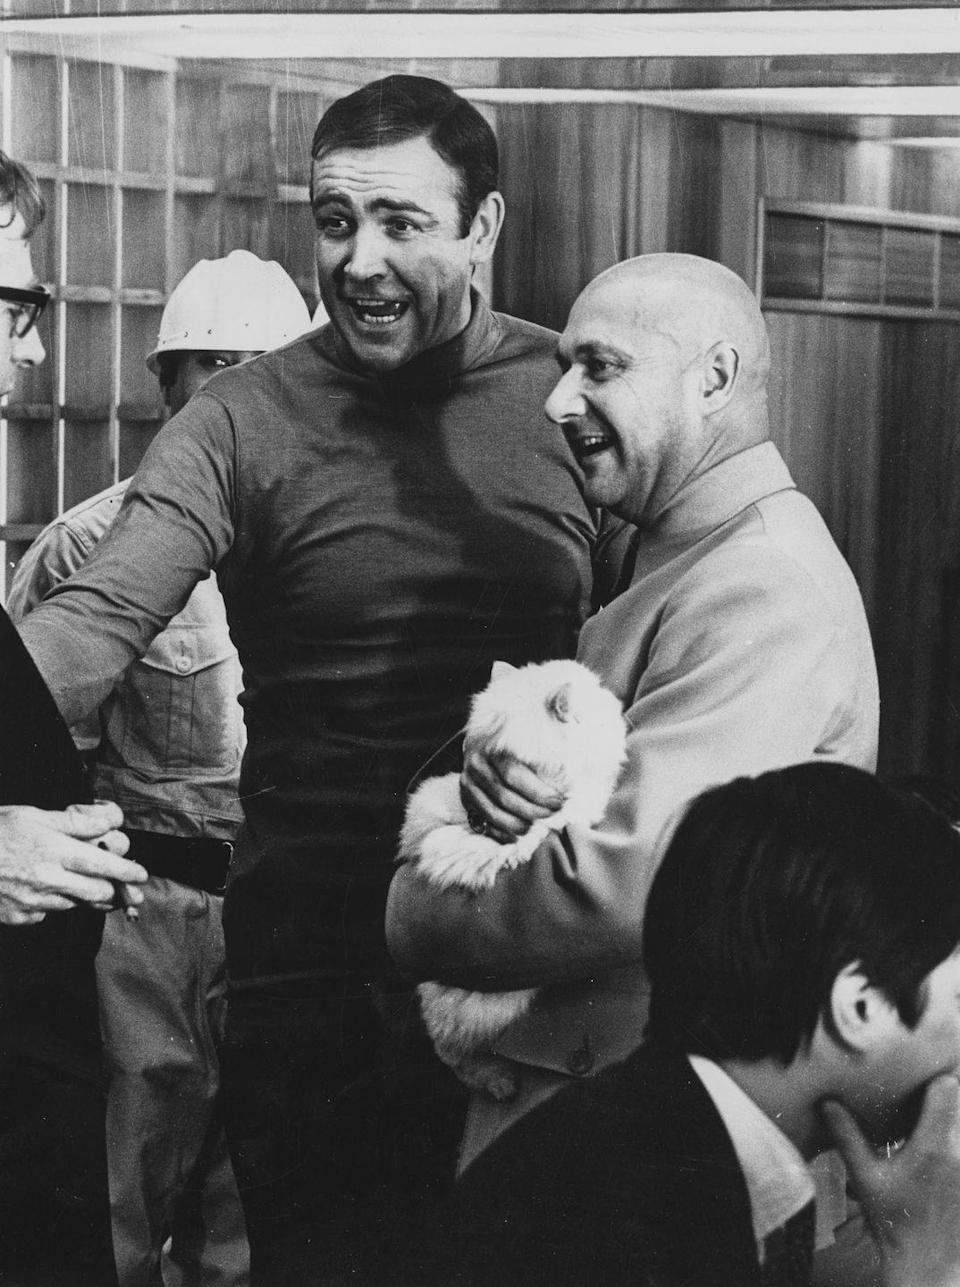 <p>Sean Connery and Donald Pleasance (in costume as Blofeld holding a cat) chatting in between scenes on the set of You Only Live Twice.</p>